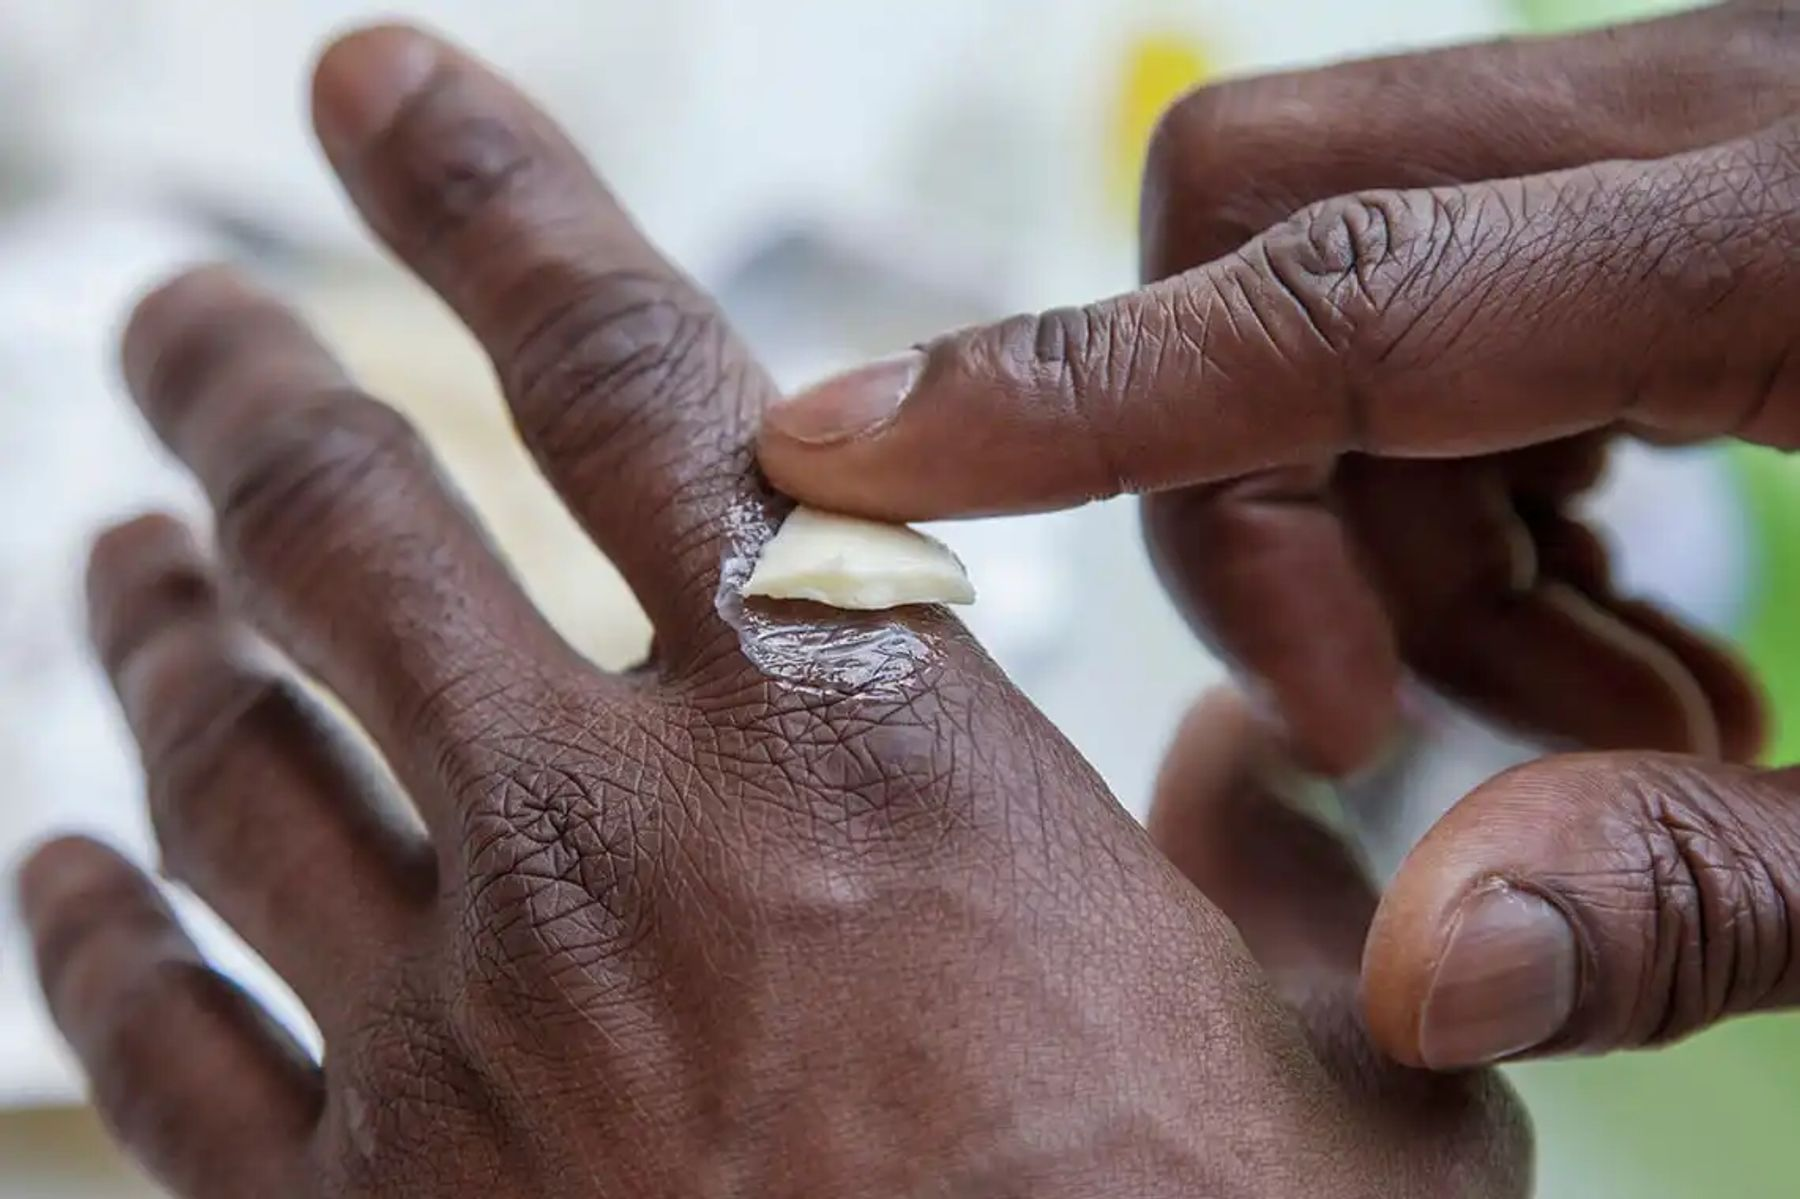 Step 1: A person is rubbing a white substance over their left forefinger knuckle with the forefinger of their right hand